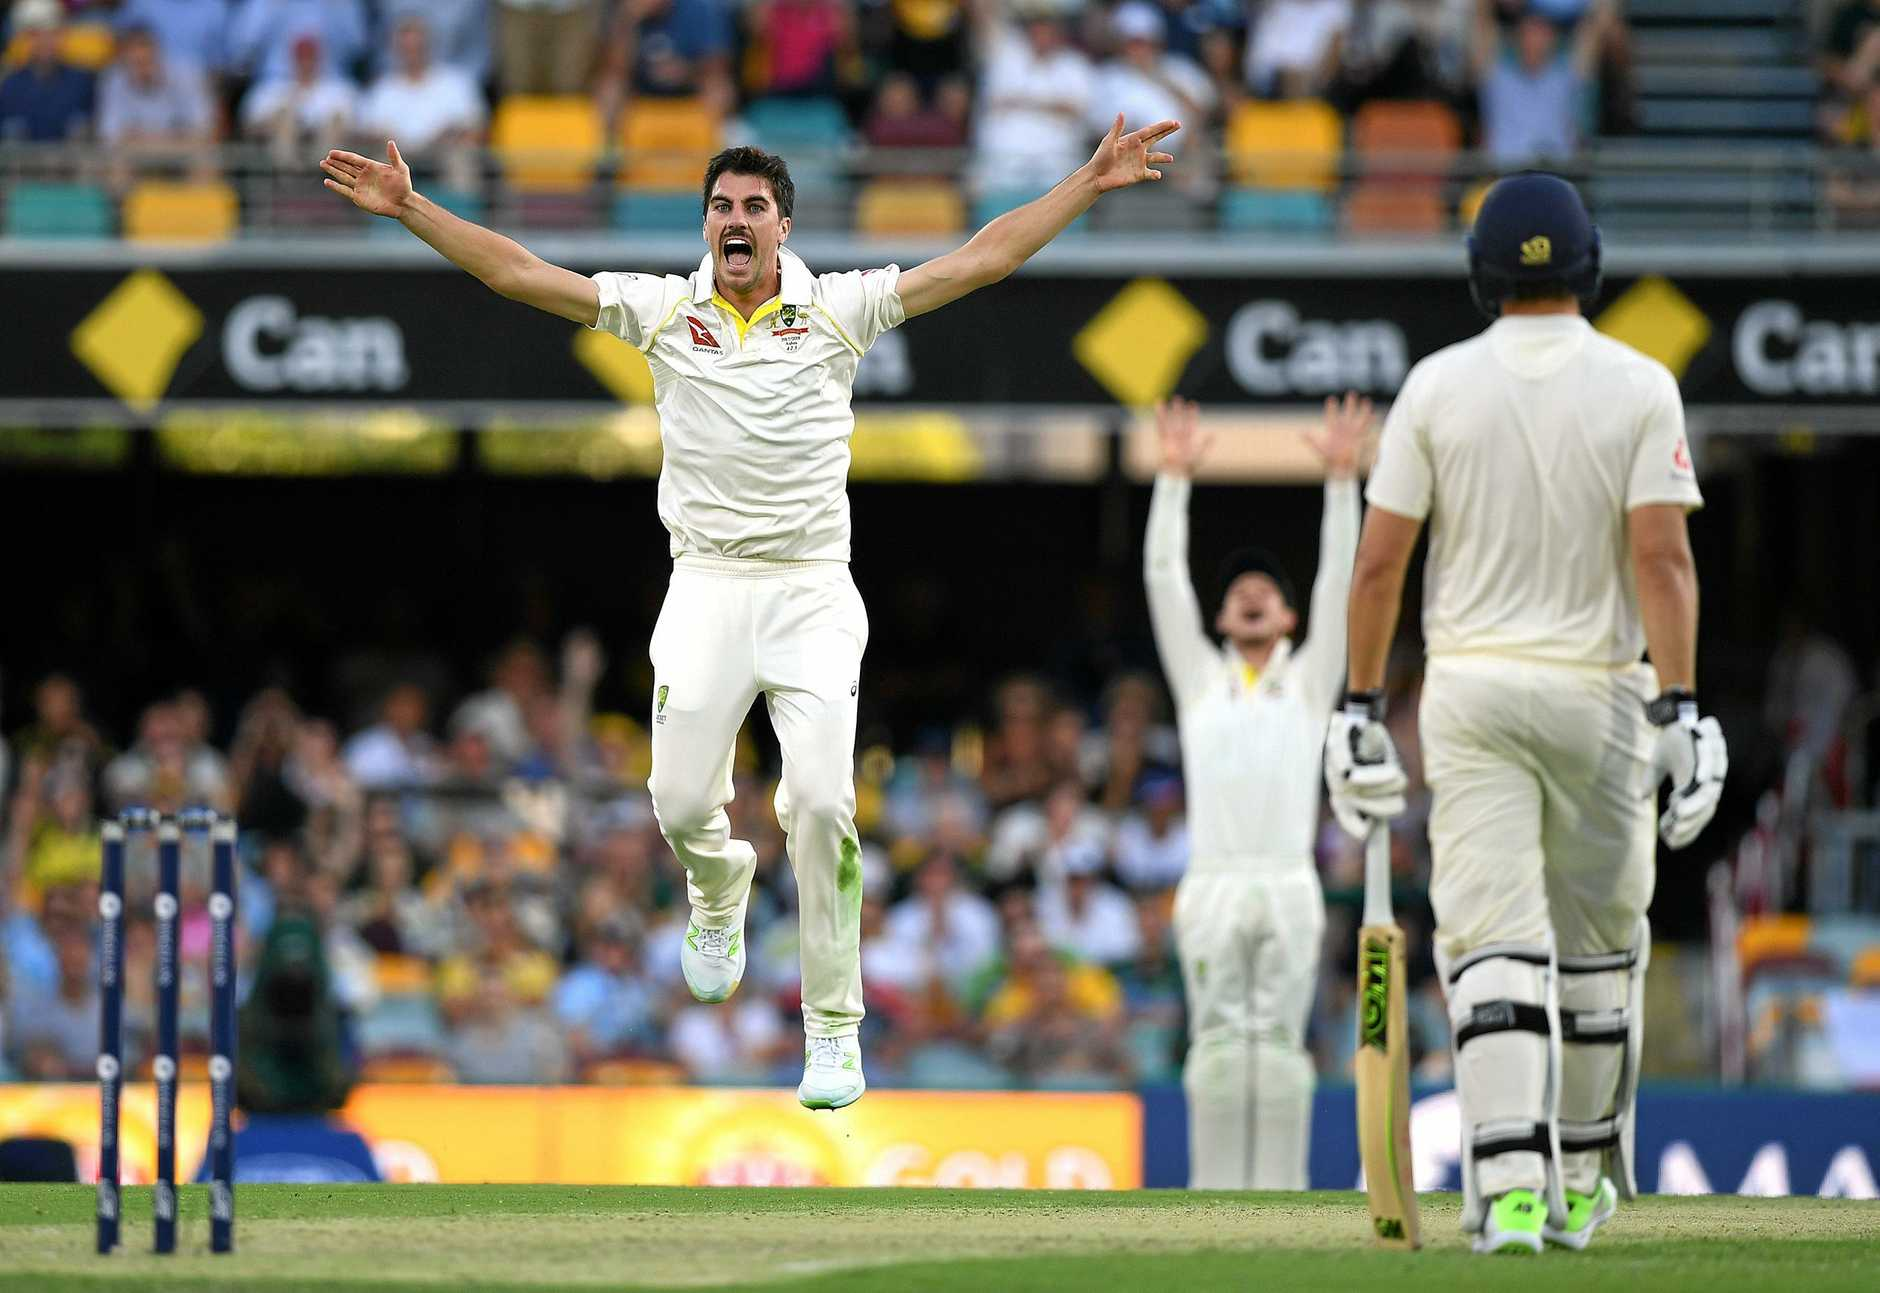 Pat Cummins celebrates after dismissing England captain Joe Root on the opening day of the Test.